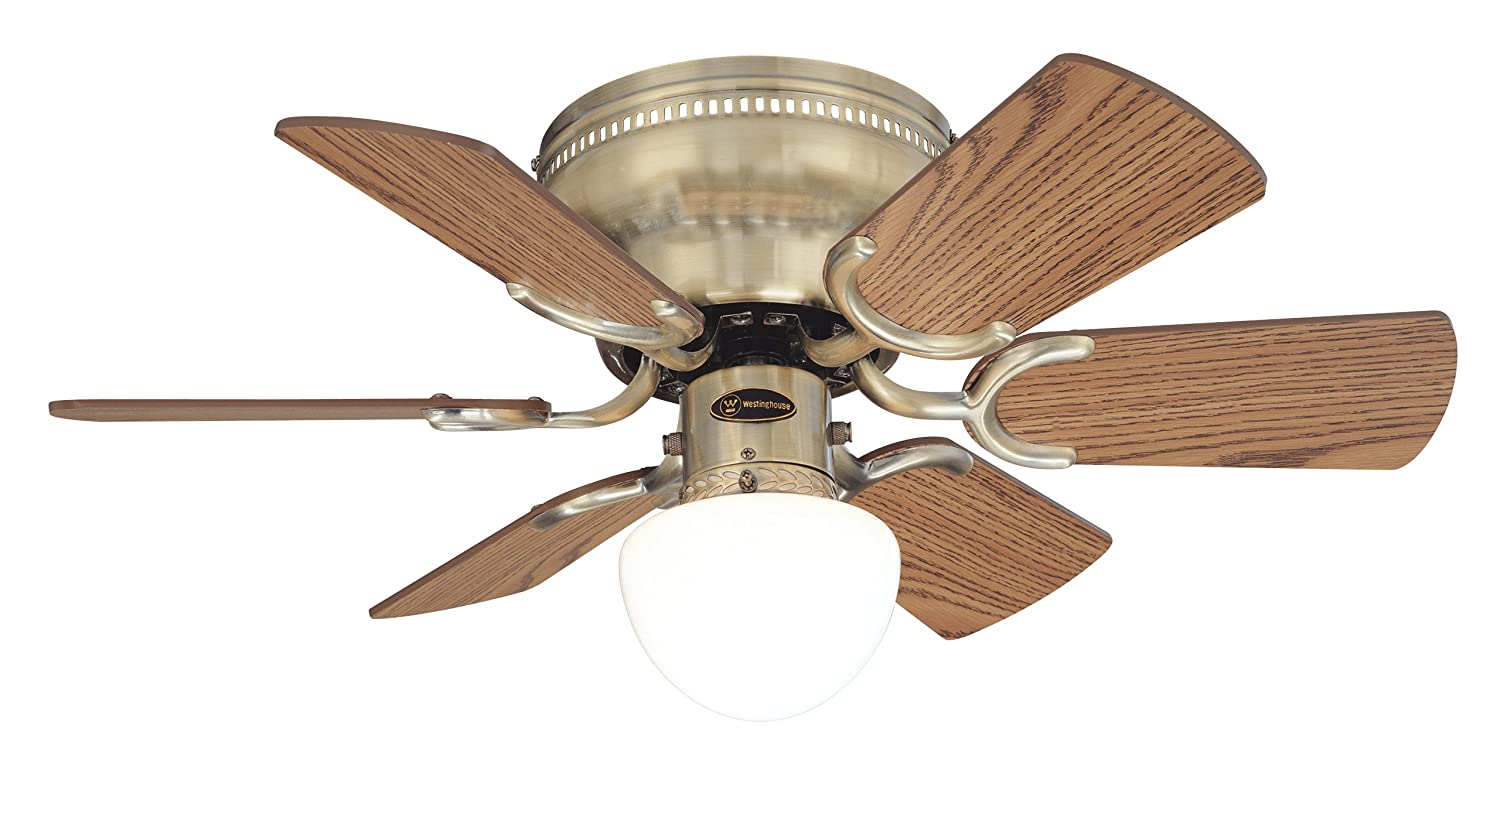 Westinghouse 78603 Petite 6 Blade 30 Inch 3 Speed Hugger Style Ceiling Fan  With Light, Antique Brass     Amazon.com